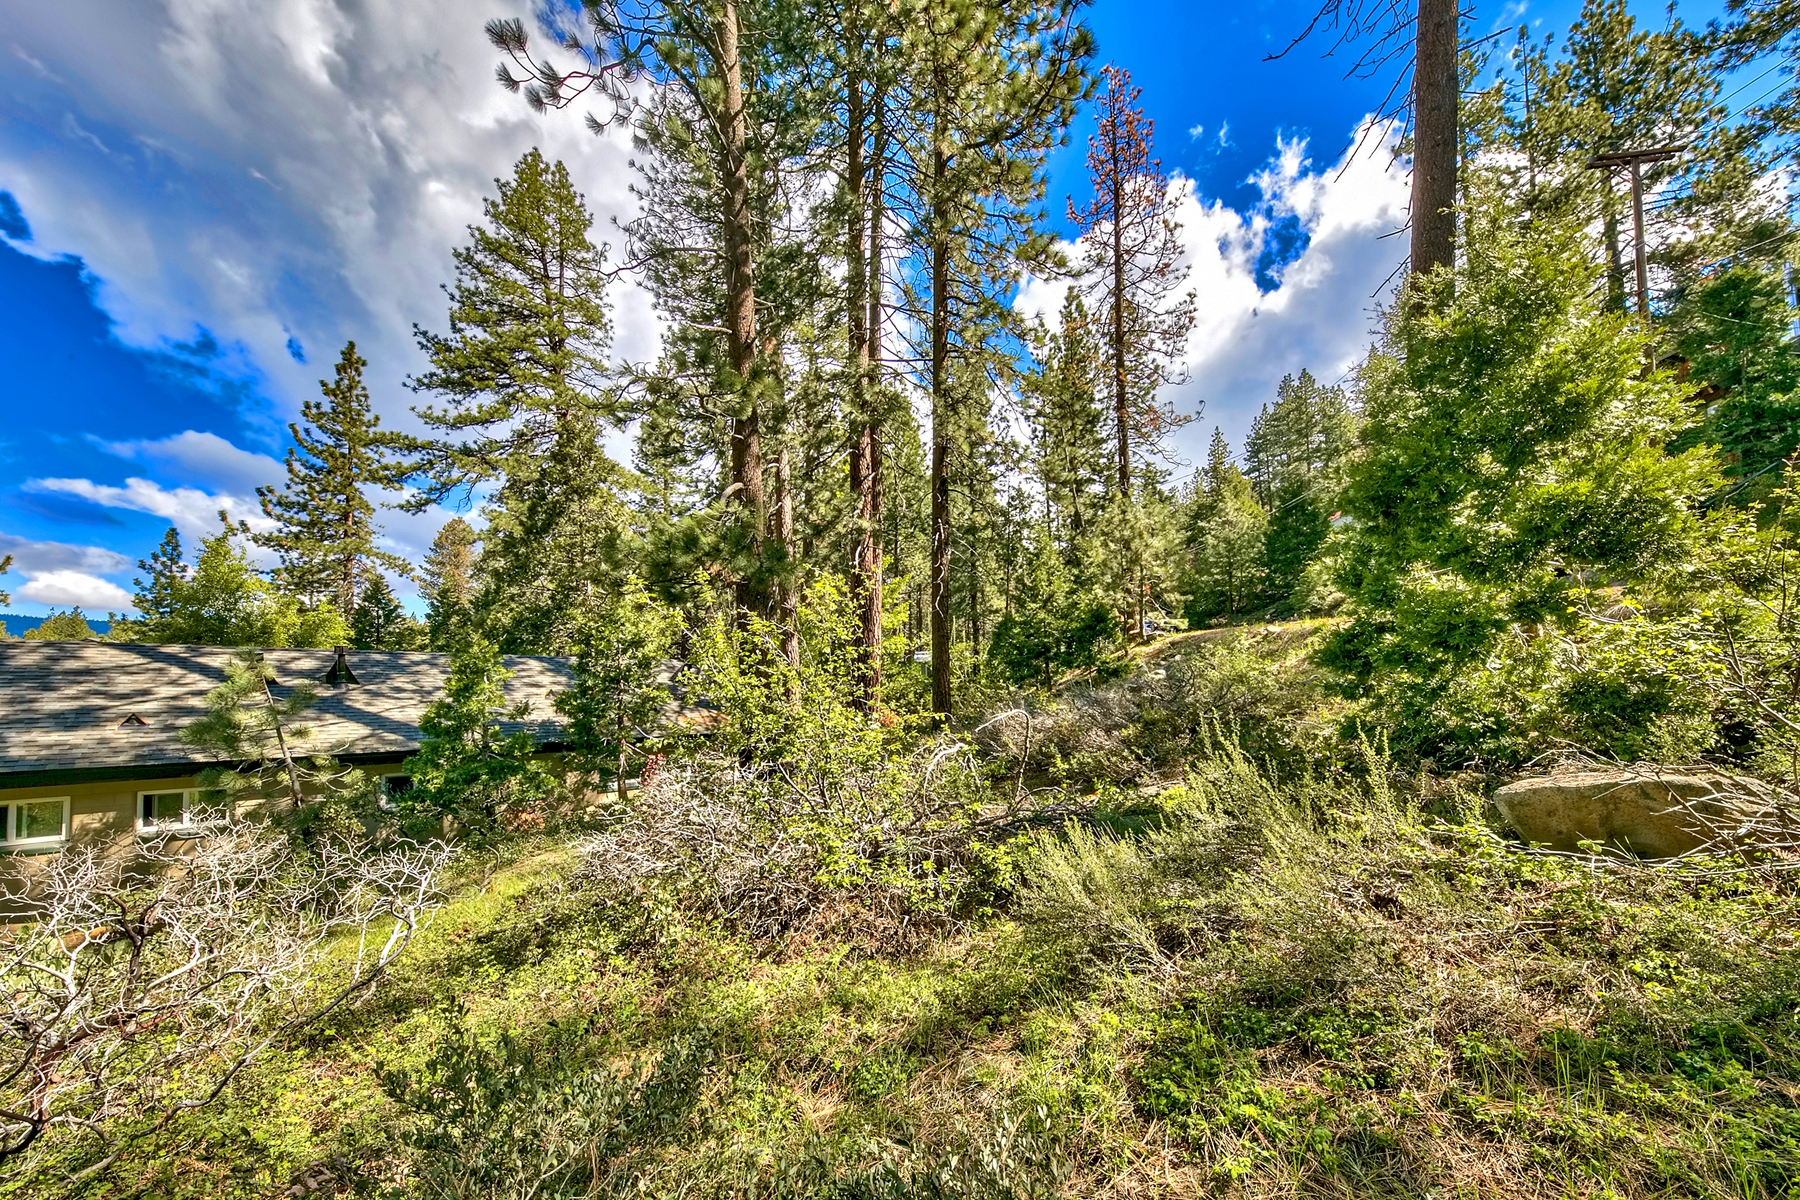 Additional photo for property listing at 8945 North Lake Blvd./Beaver Street, Kings Beach, CA 96143 8945 North Lake Blvd./Beaver Street Kings Beach, California 96143 United States